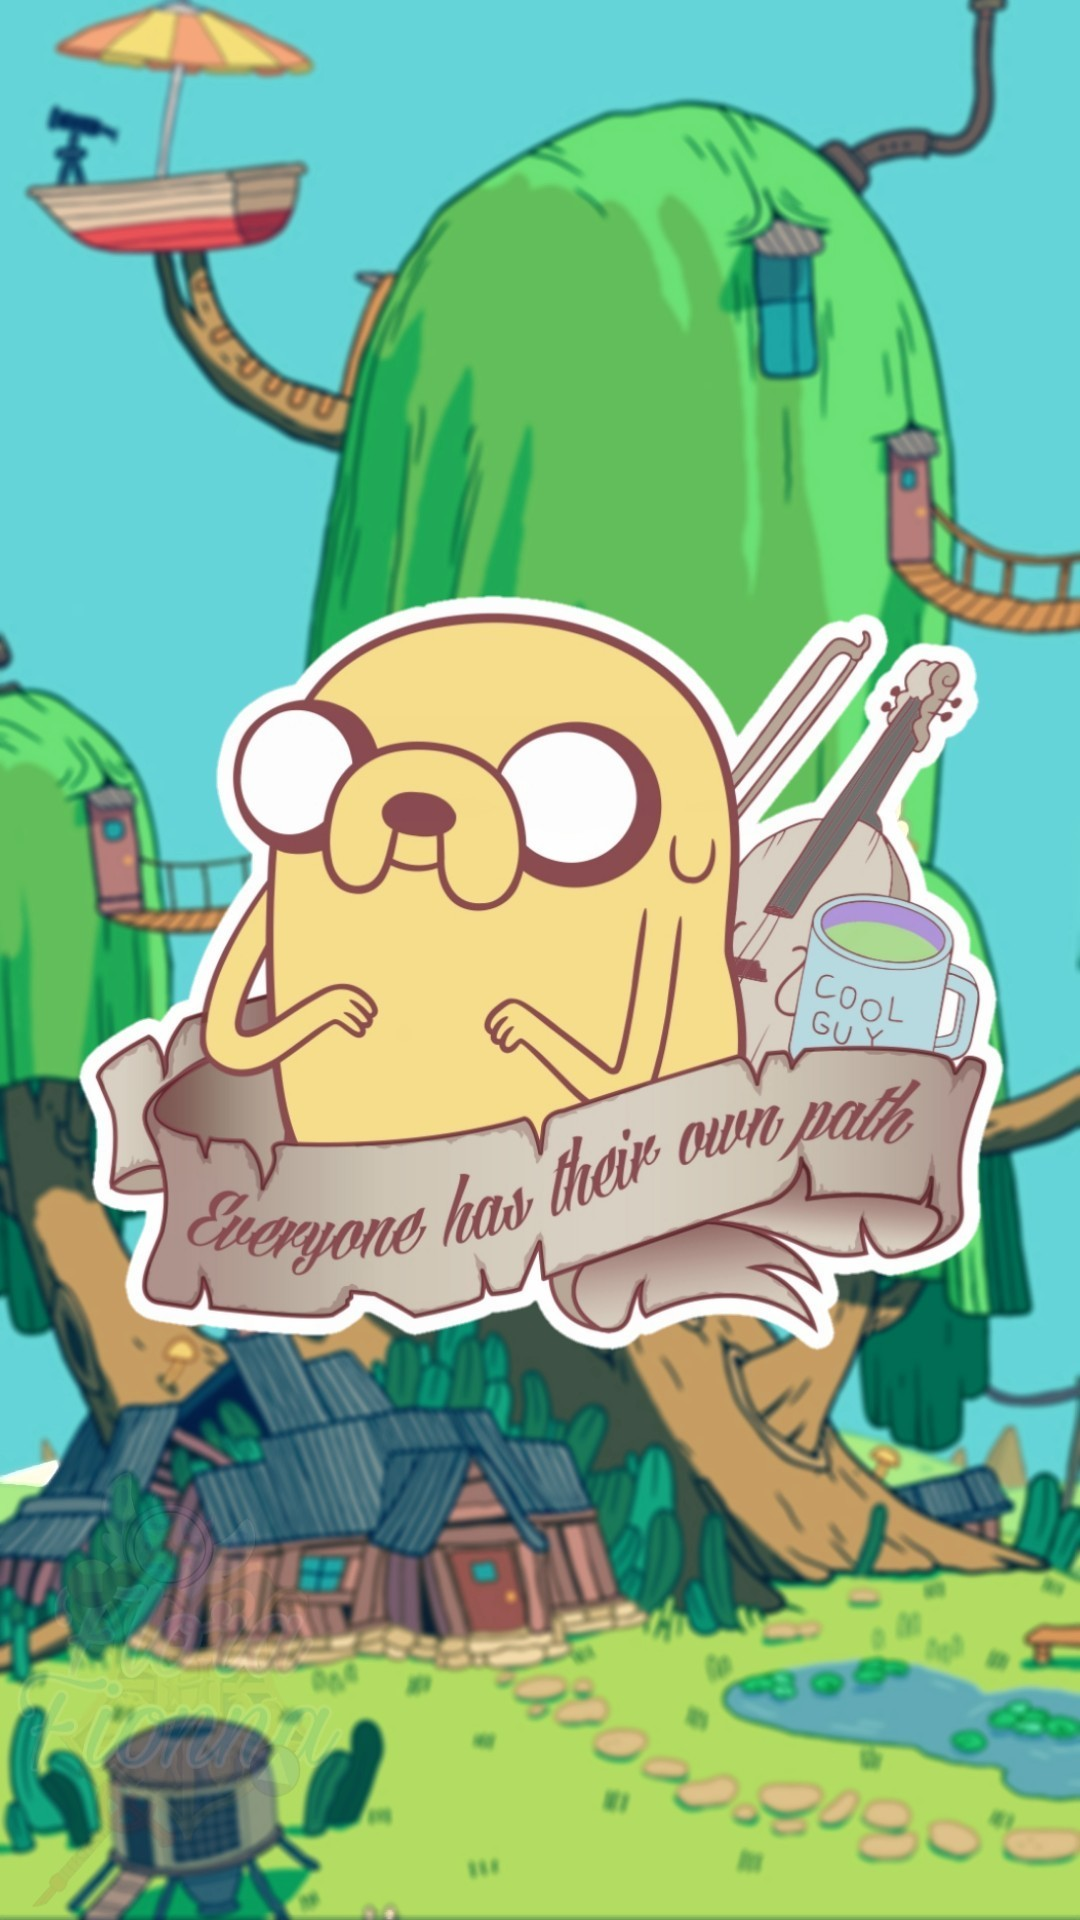 Aesthetic Adventure Time Wallpaper Android Download, - Adventure Time Treehouse , HD Wallpaper & Backgrounds